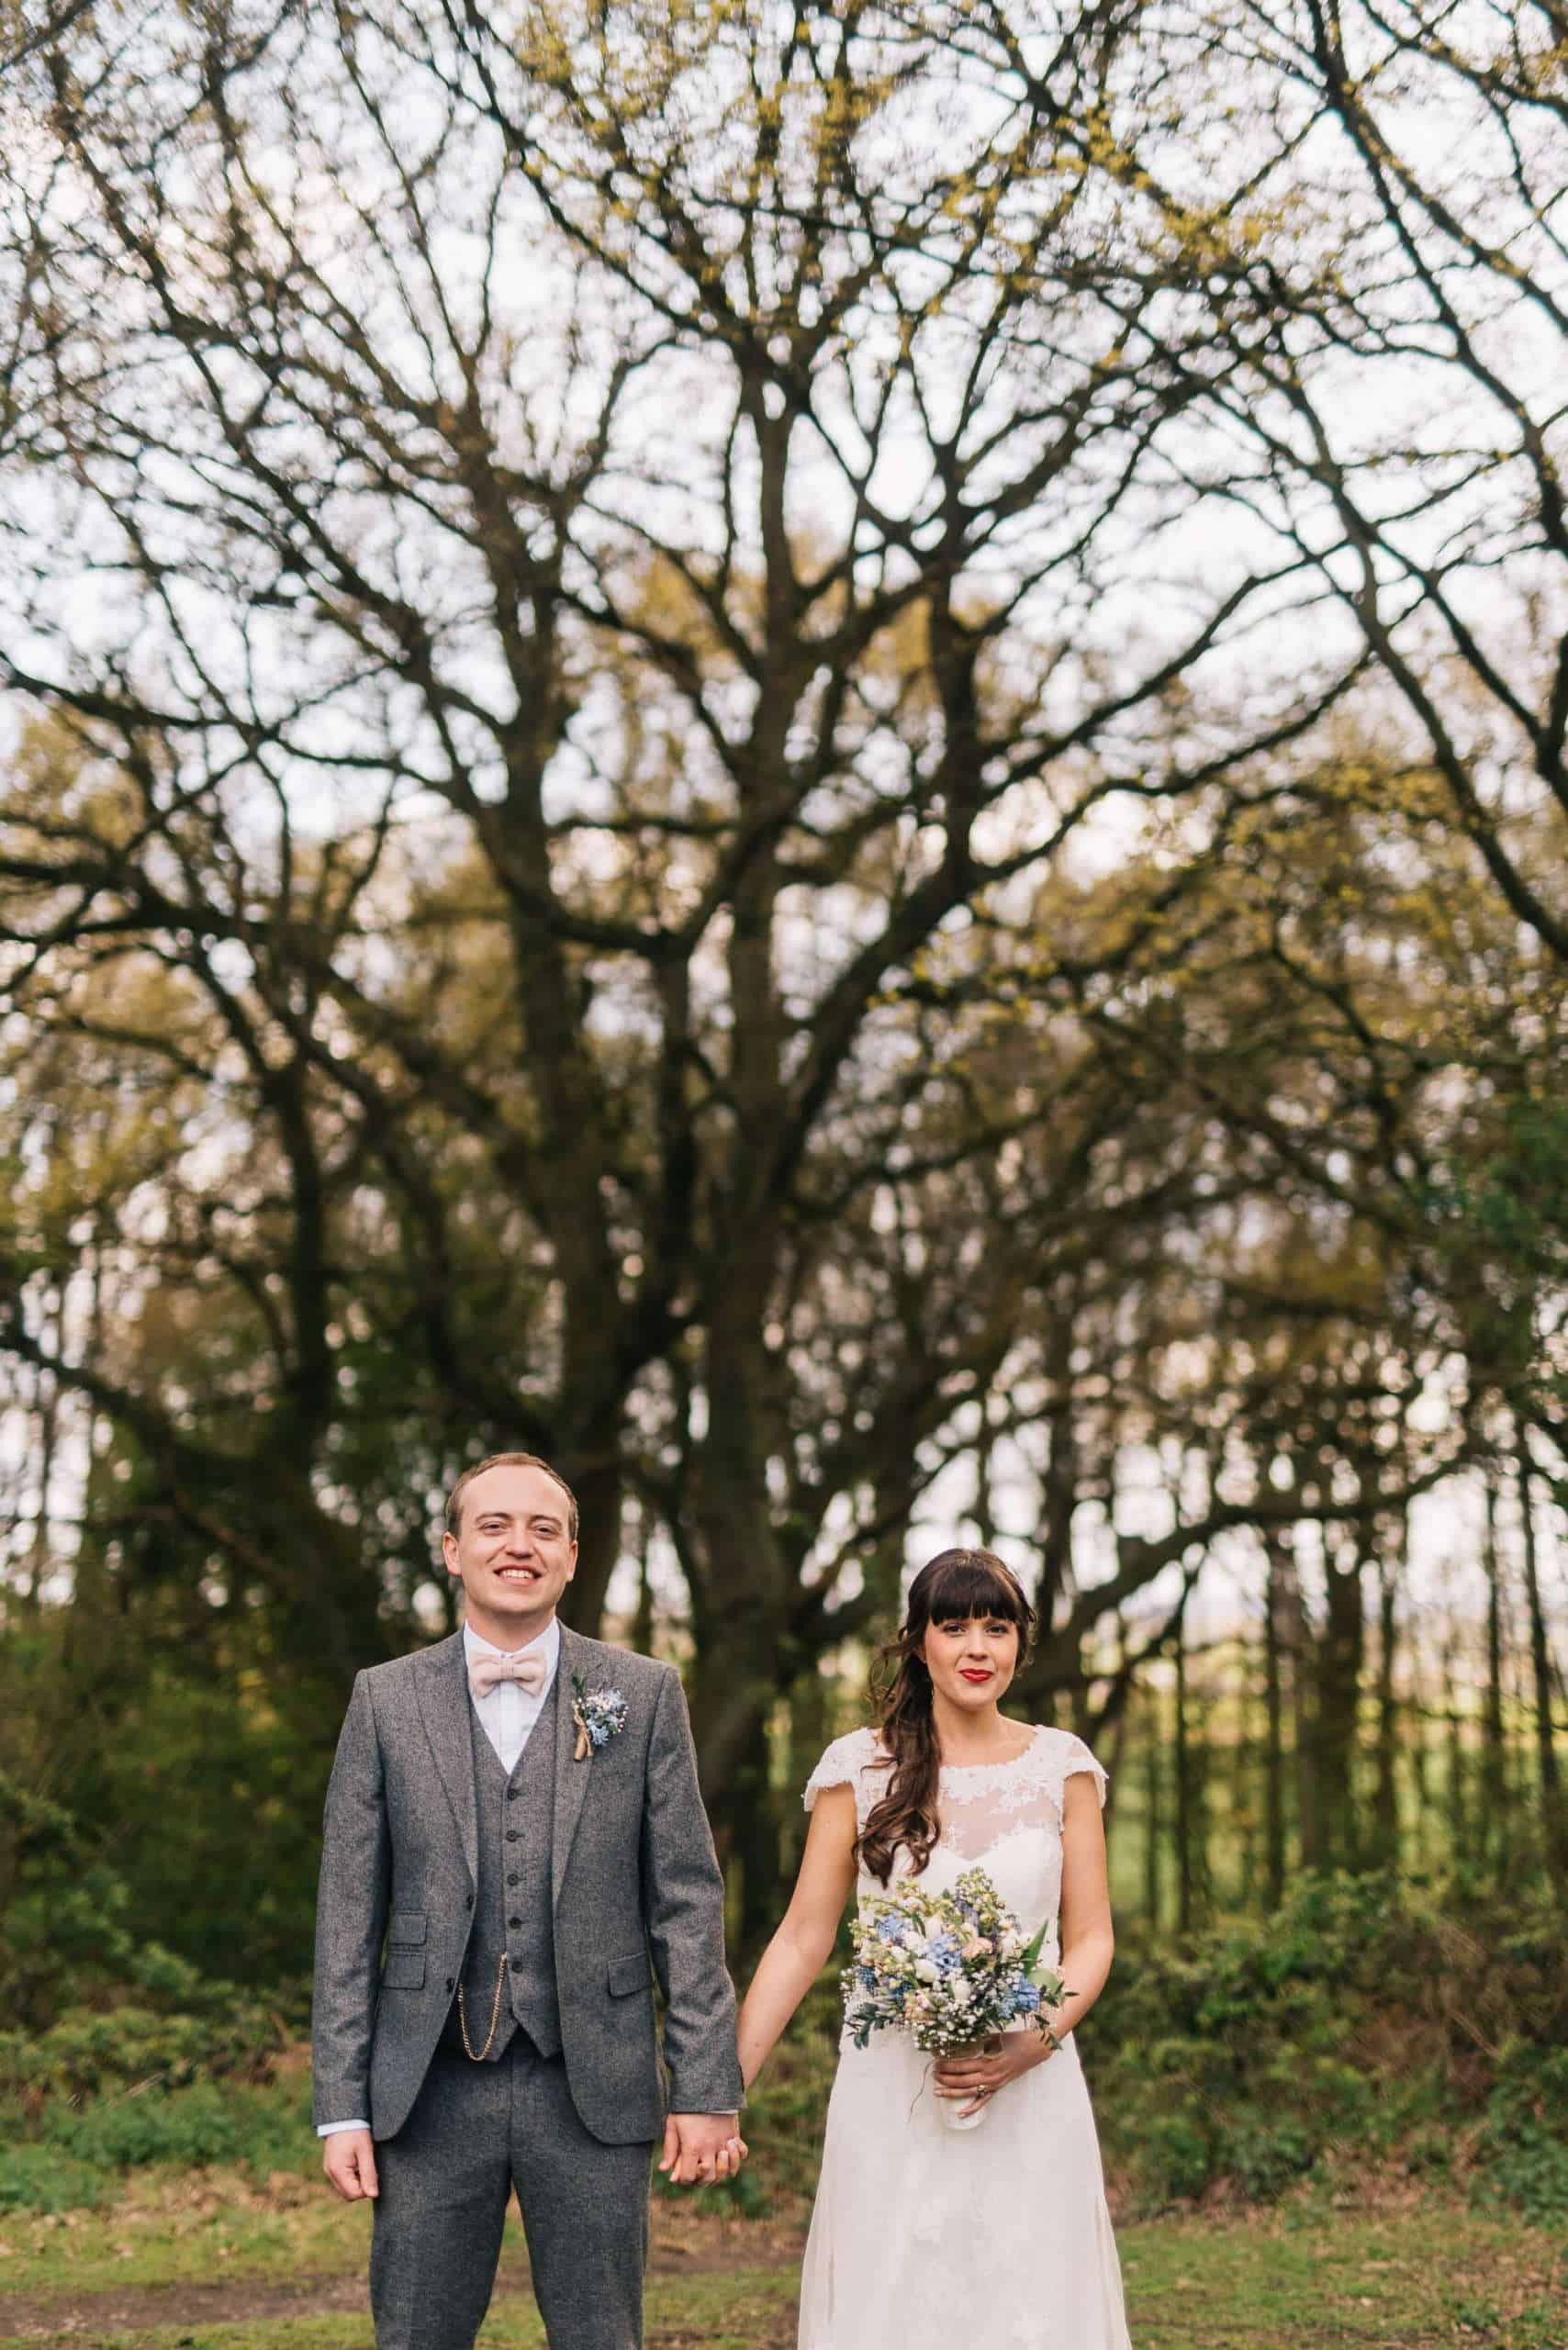 230416 Essex Wedding Photography Baddow Gallerywood 108